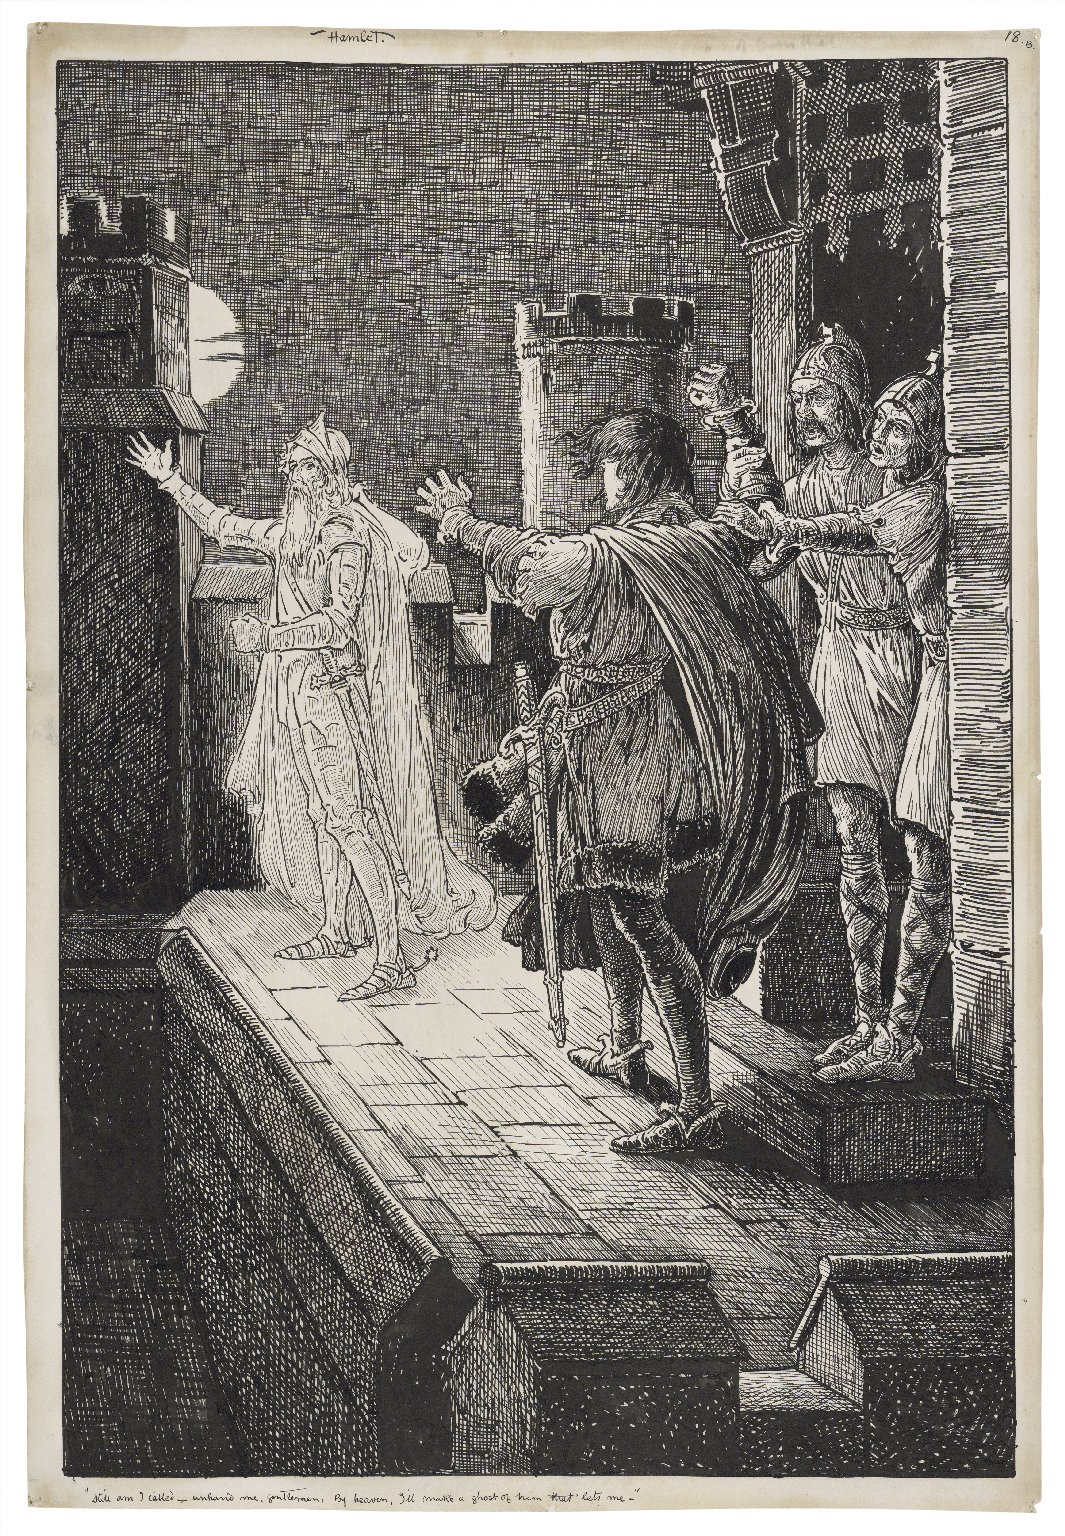 Hamlet. Still am I called - unhand me gentlemen, by heaven, I'll make a ghost of him that lets me [graphic] / [Louis Rhead].